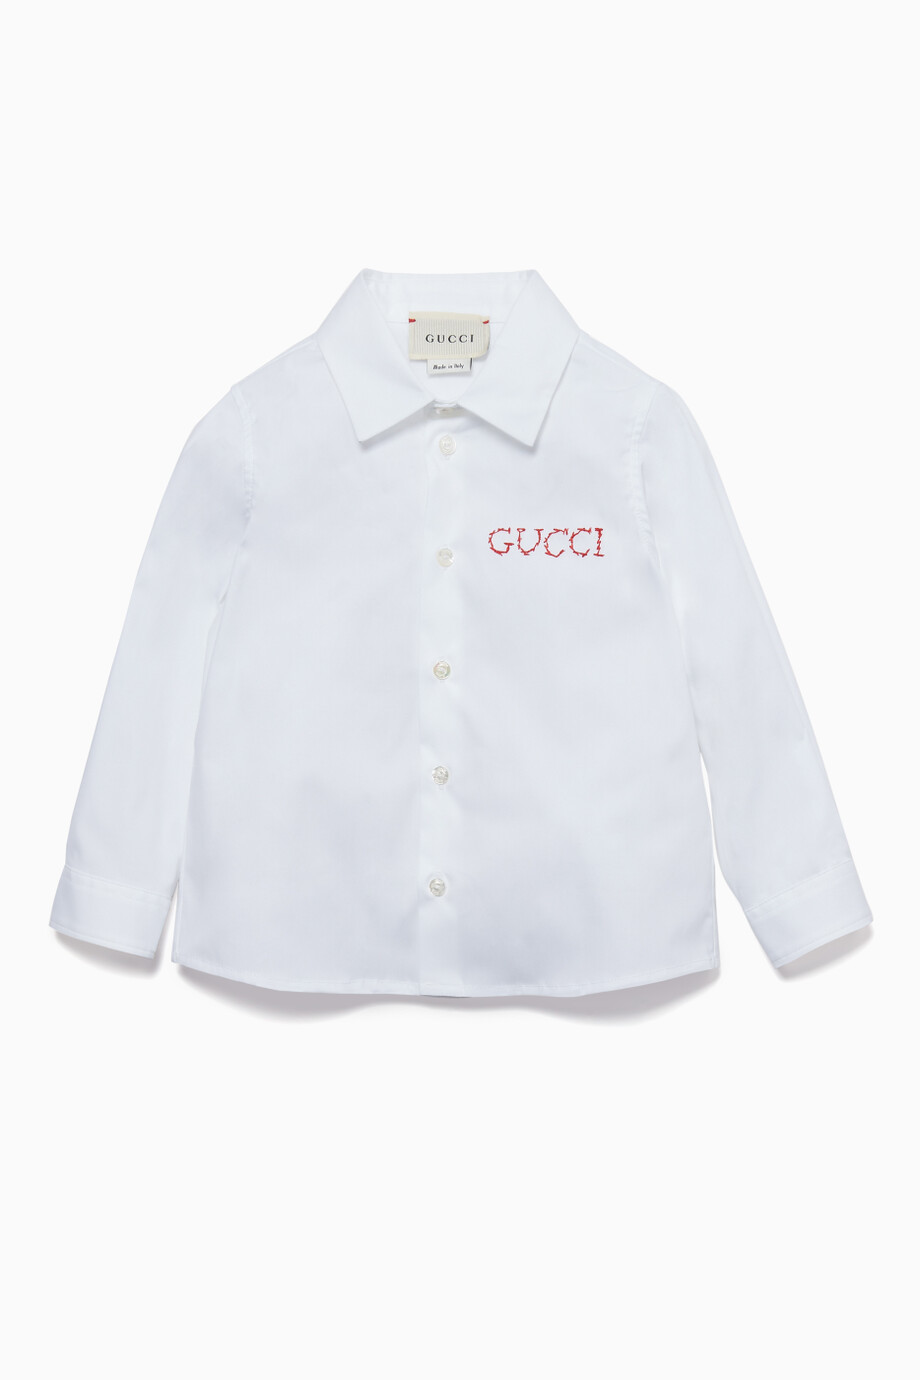 d1499c1b5 Shop Gucci White Logo Embroidered Shirt for Kids | Ounass